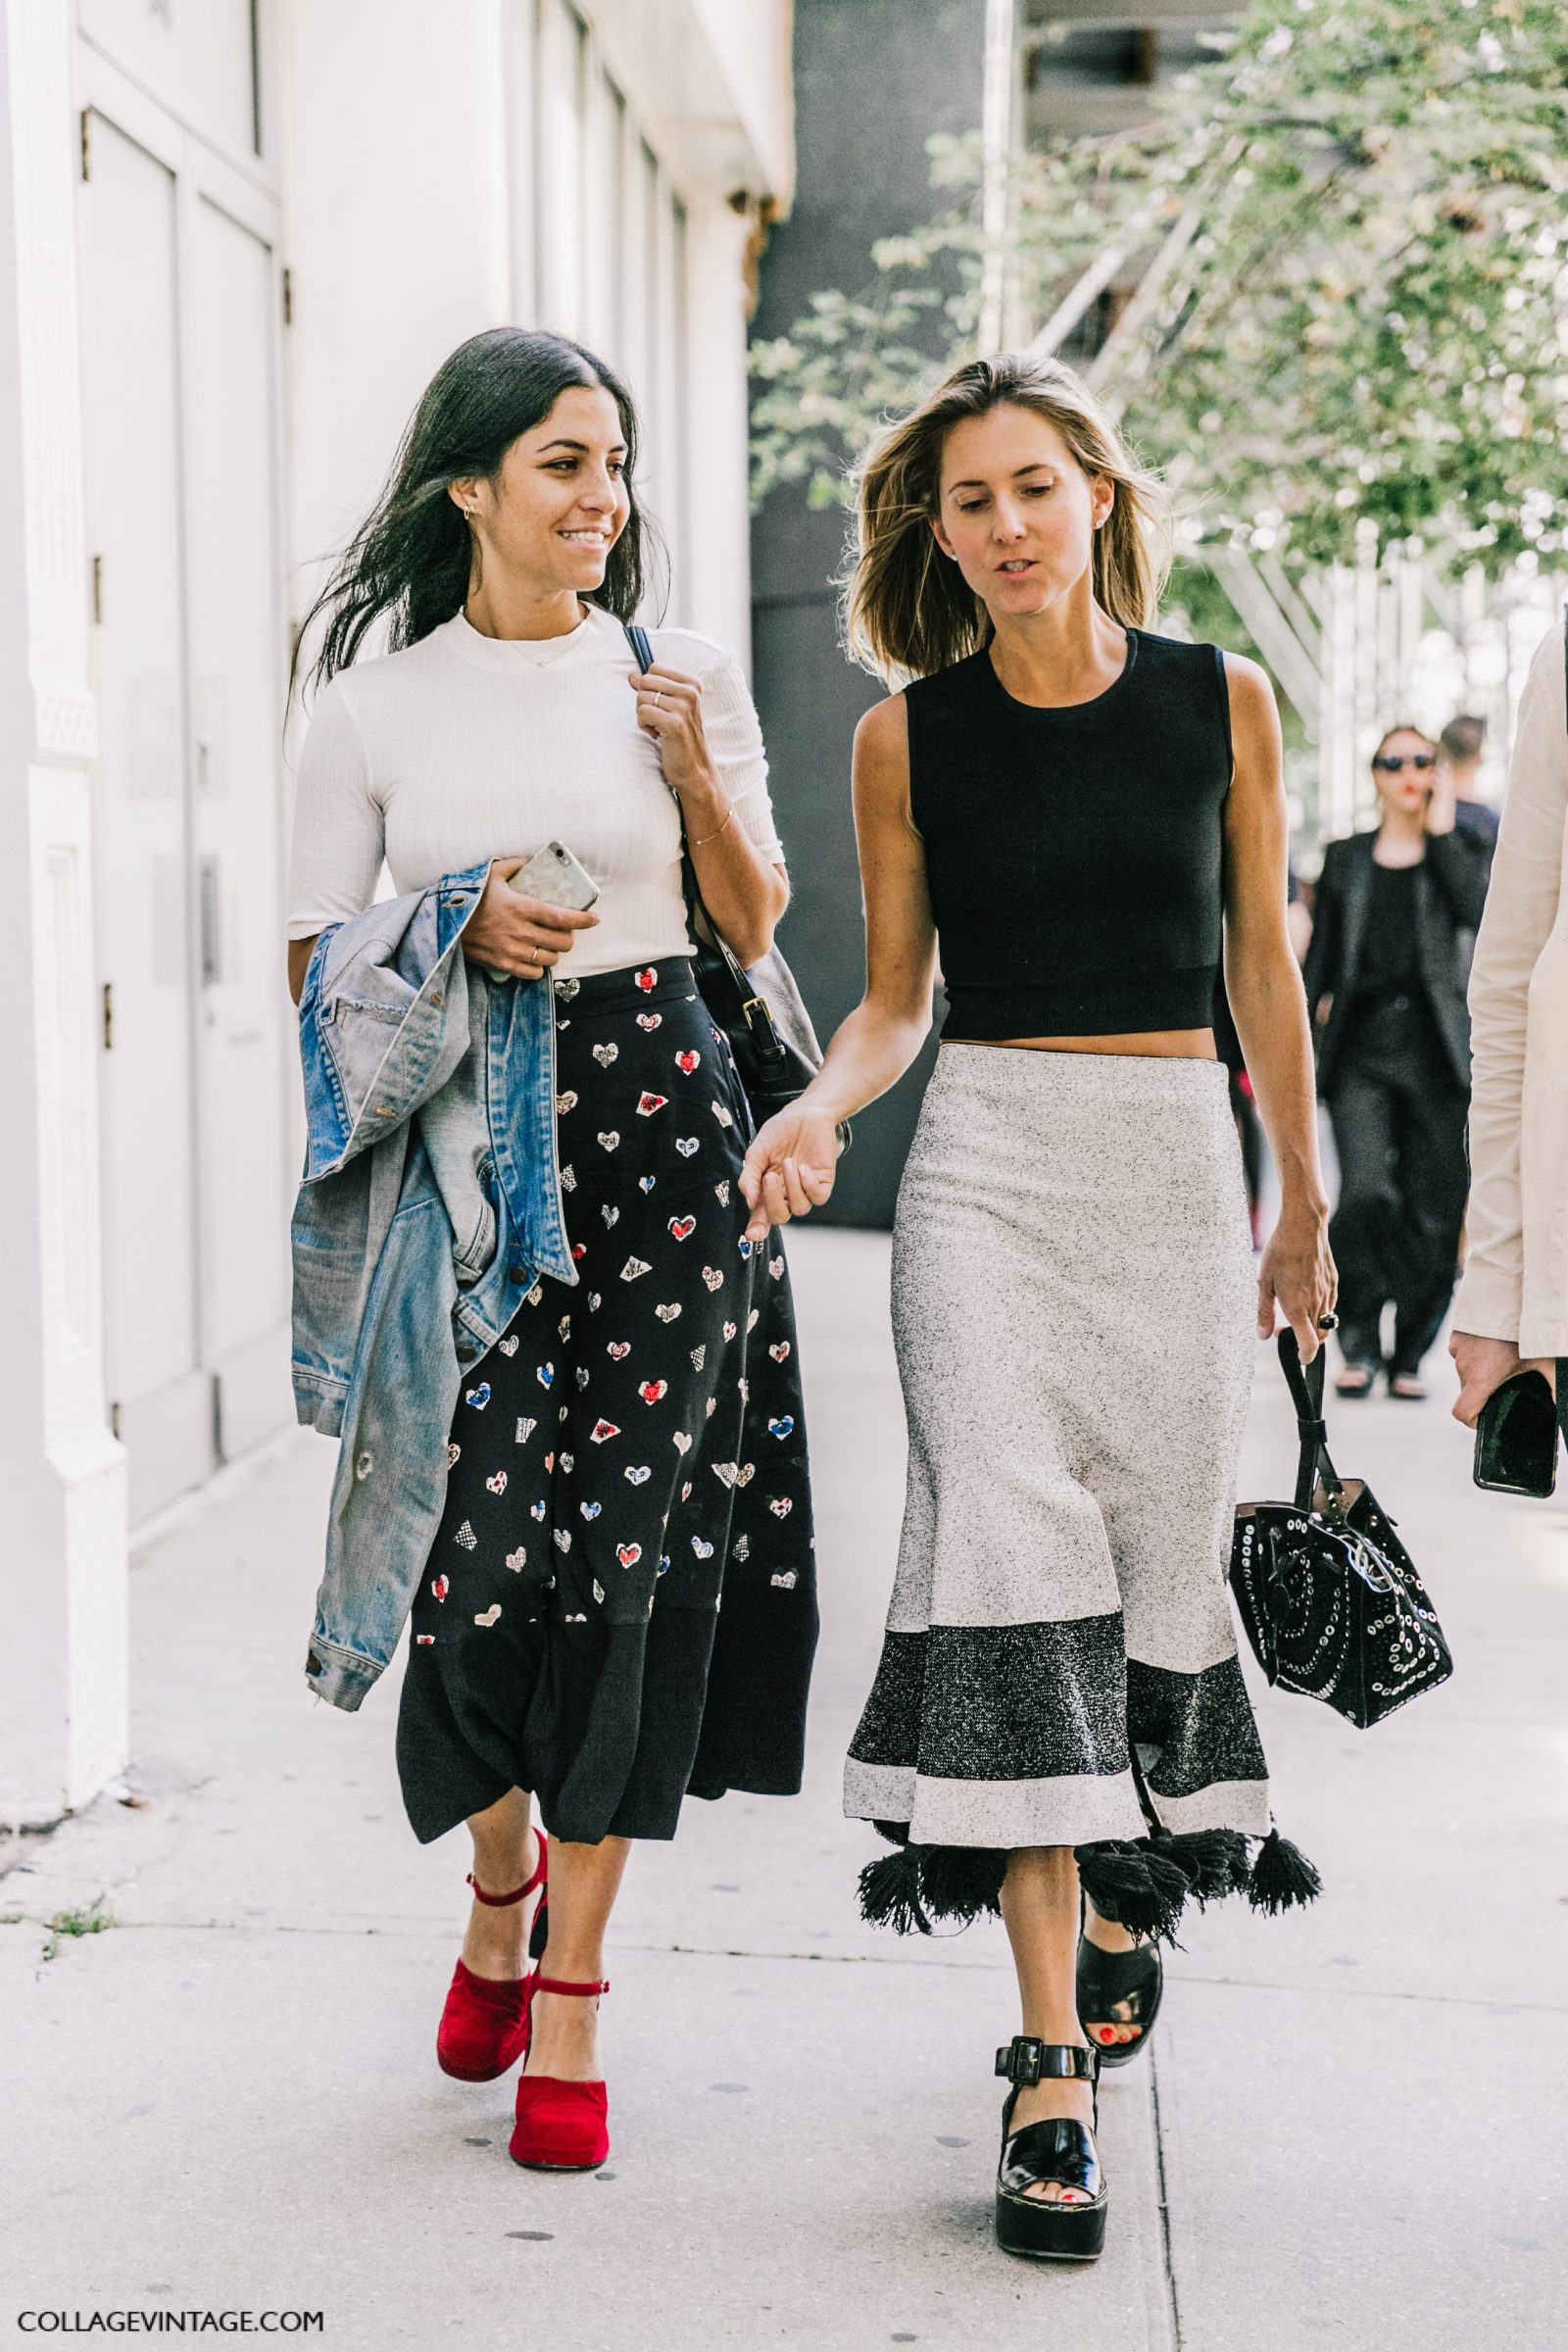 nyfw-new_york_fashion_week_ss17-street_style-outfits-collage_vintage-vintage-mansur_gavriel-rodarte-coach-104